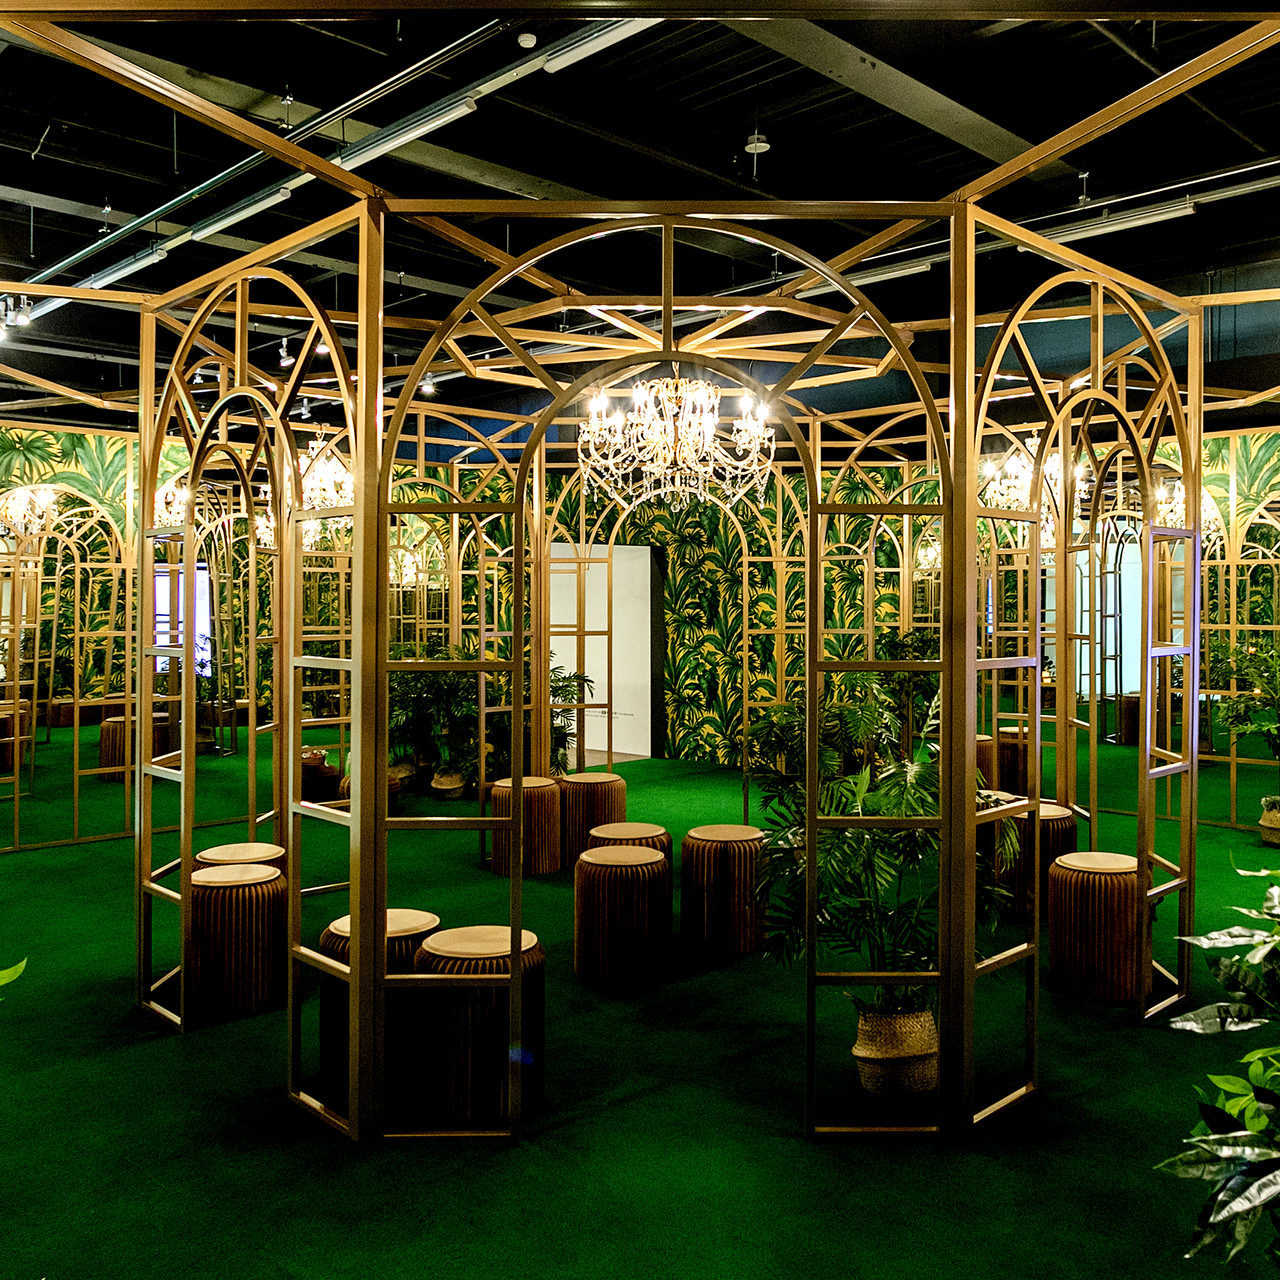 The Poet's Garden with Changbi Publishers